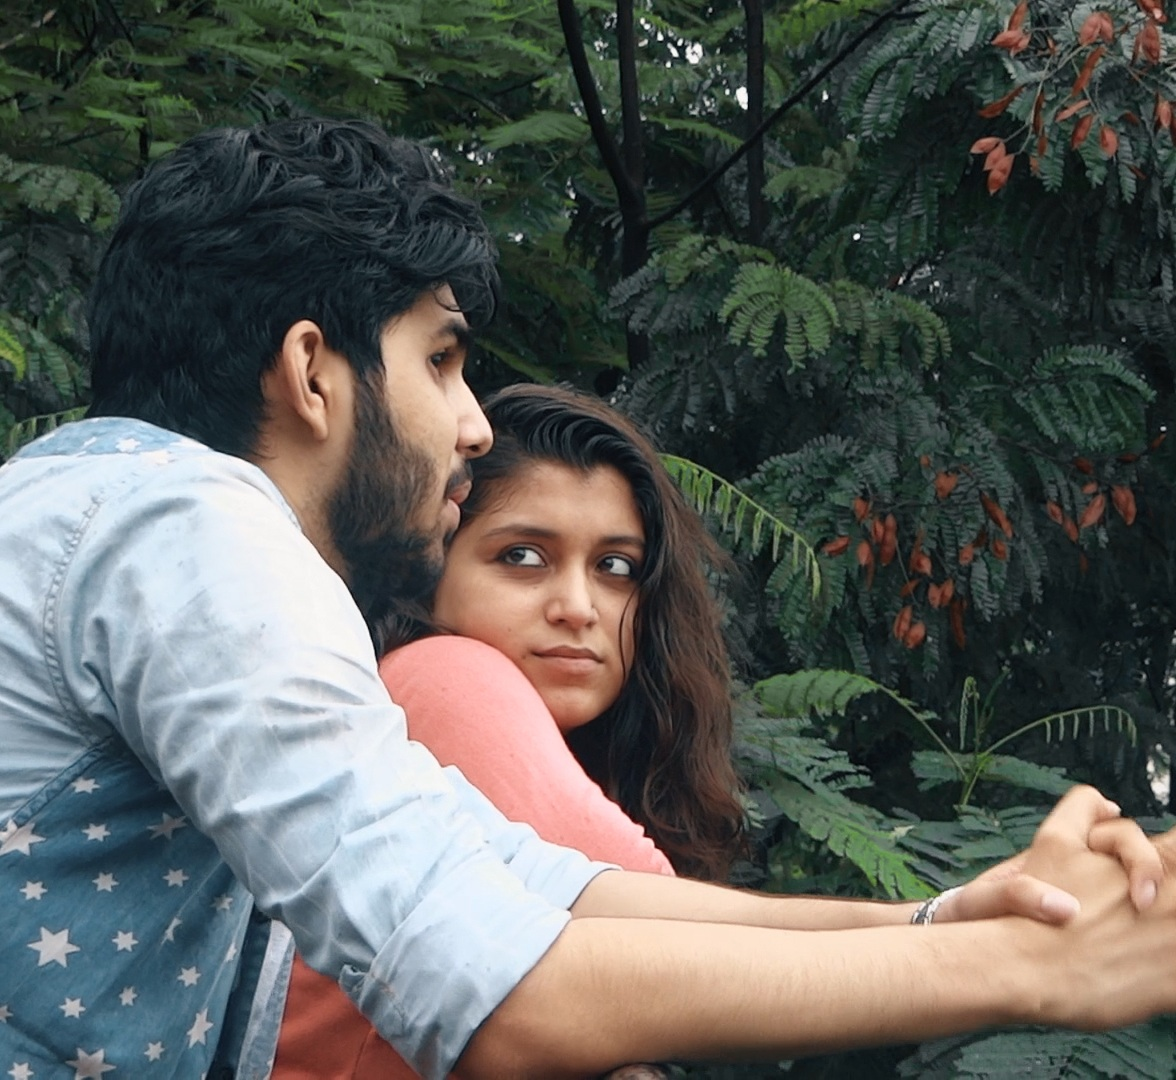 Sheher Ya Tum - 6 min India   Director Karan Asnani. A poet must choose between the love of his life and the city he loves.